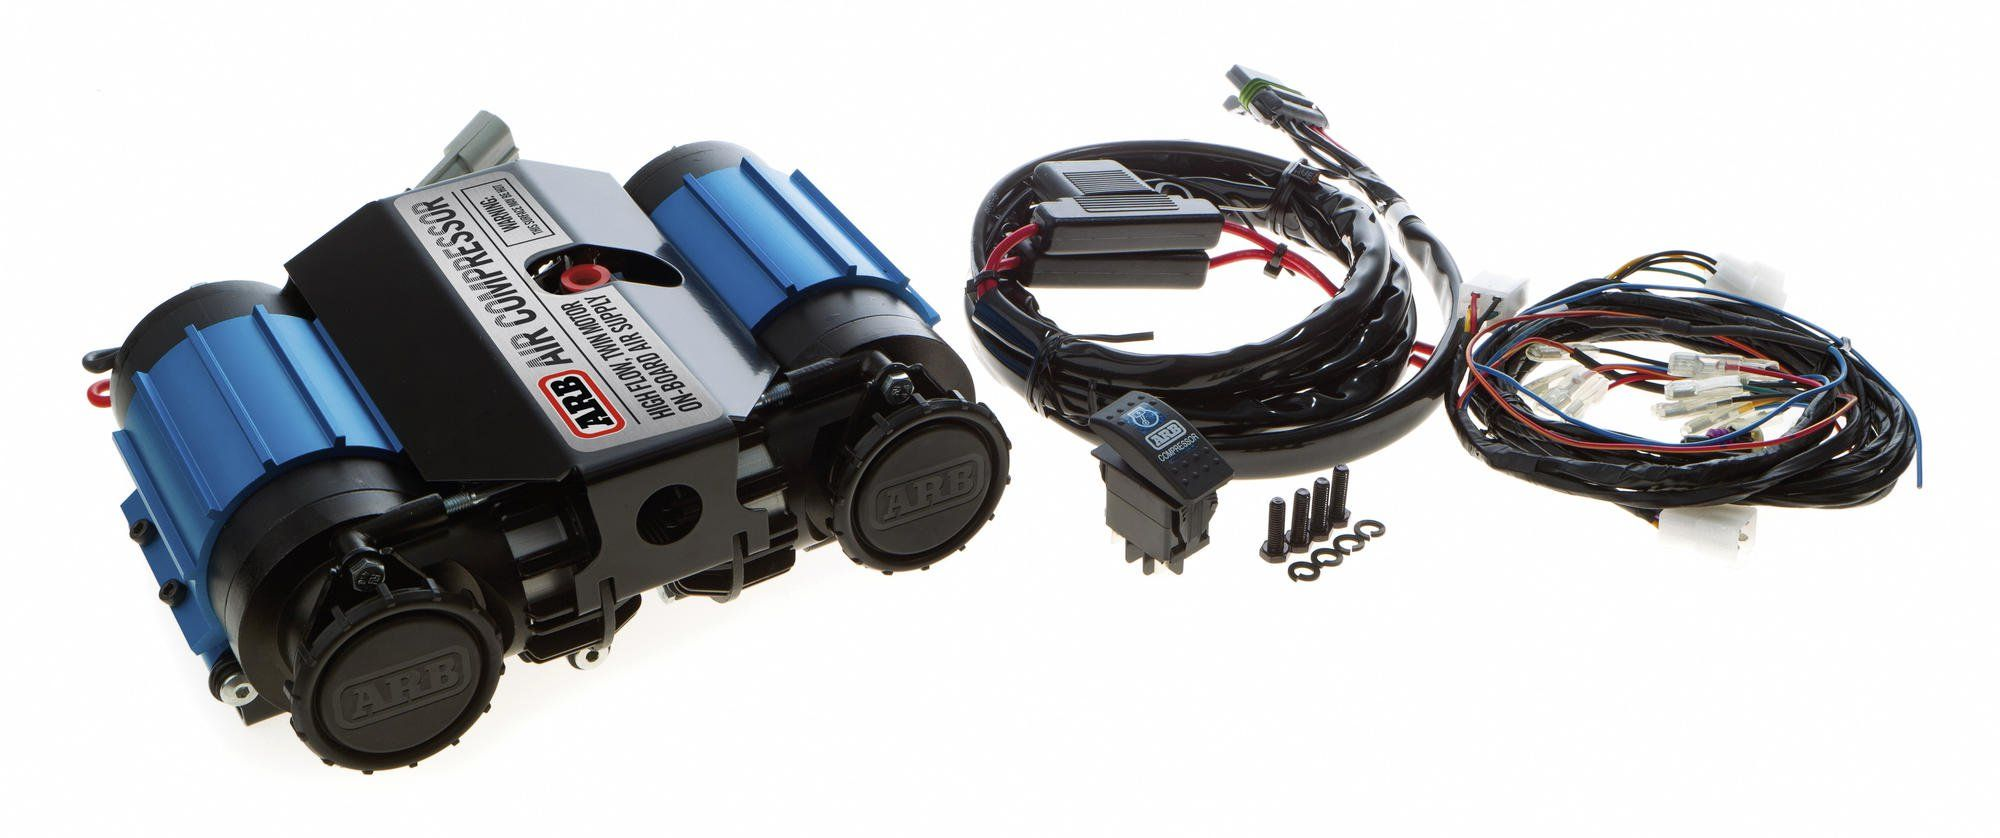 ARB On Board Twin Air Compressor Kit 4x4 accessories